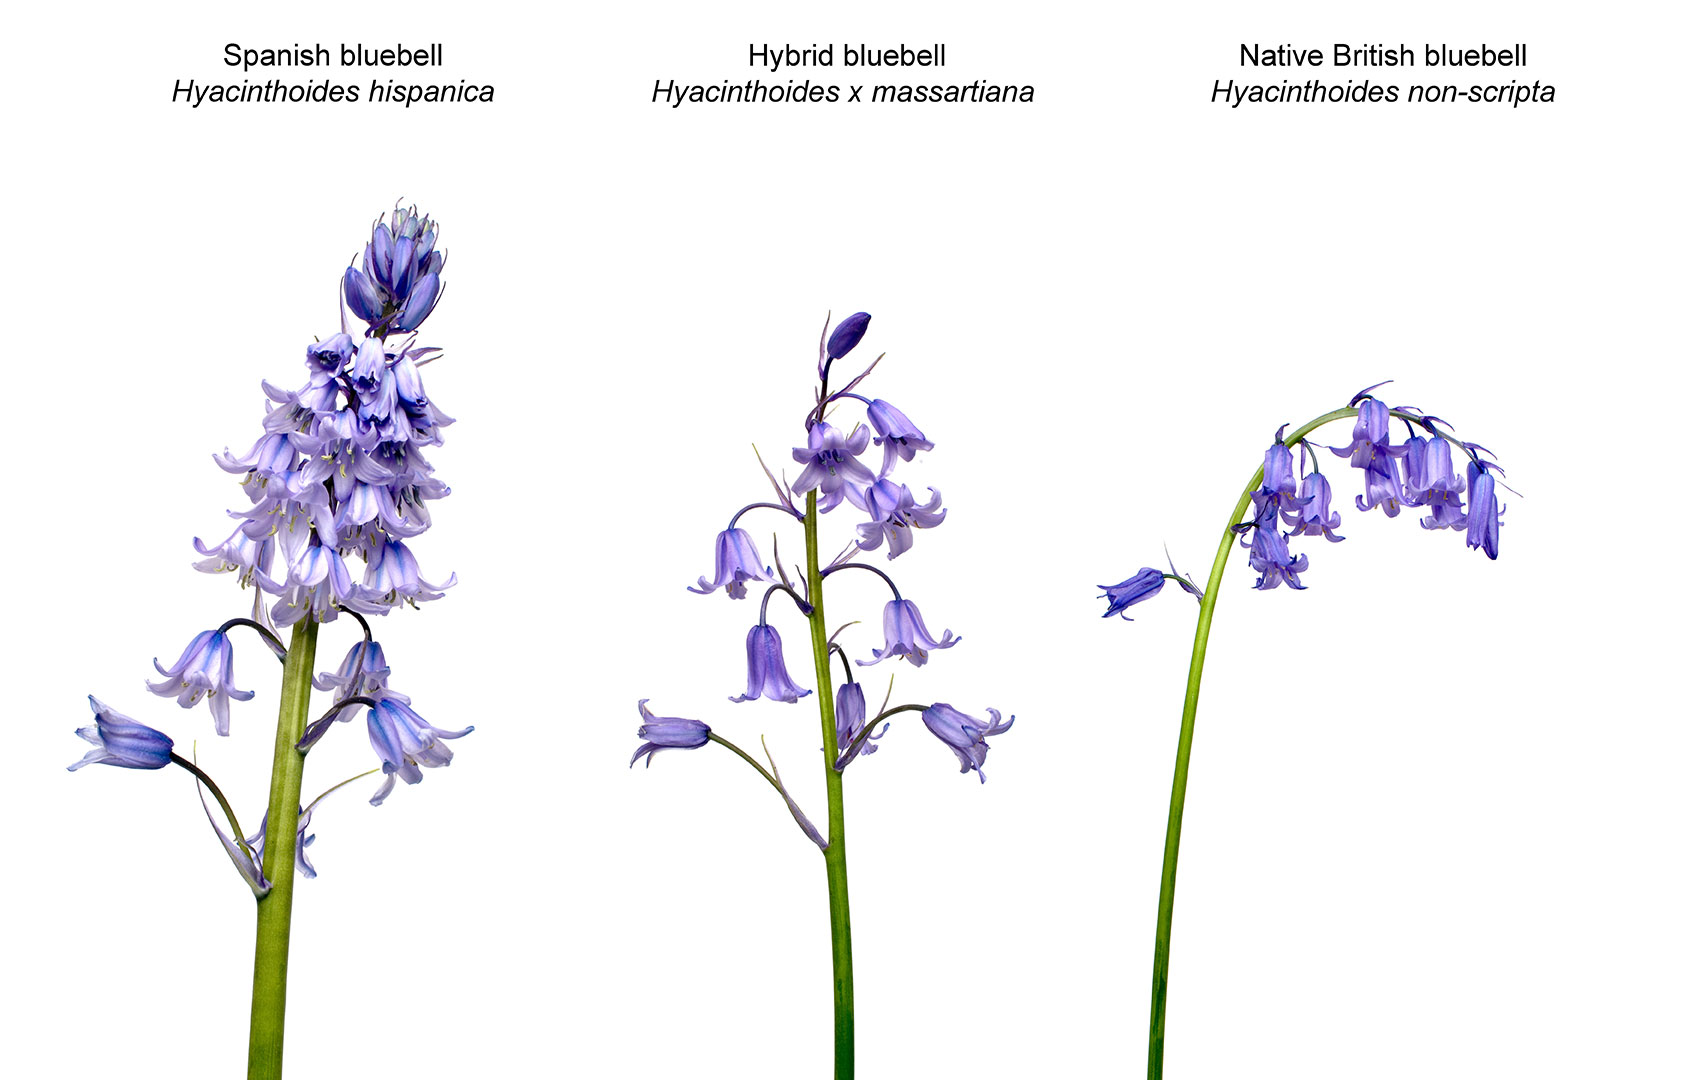 A7HM4X---bluebell-types.jpg